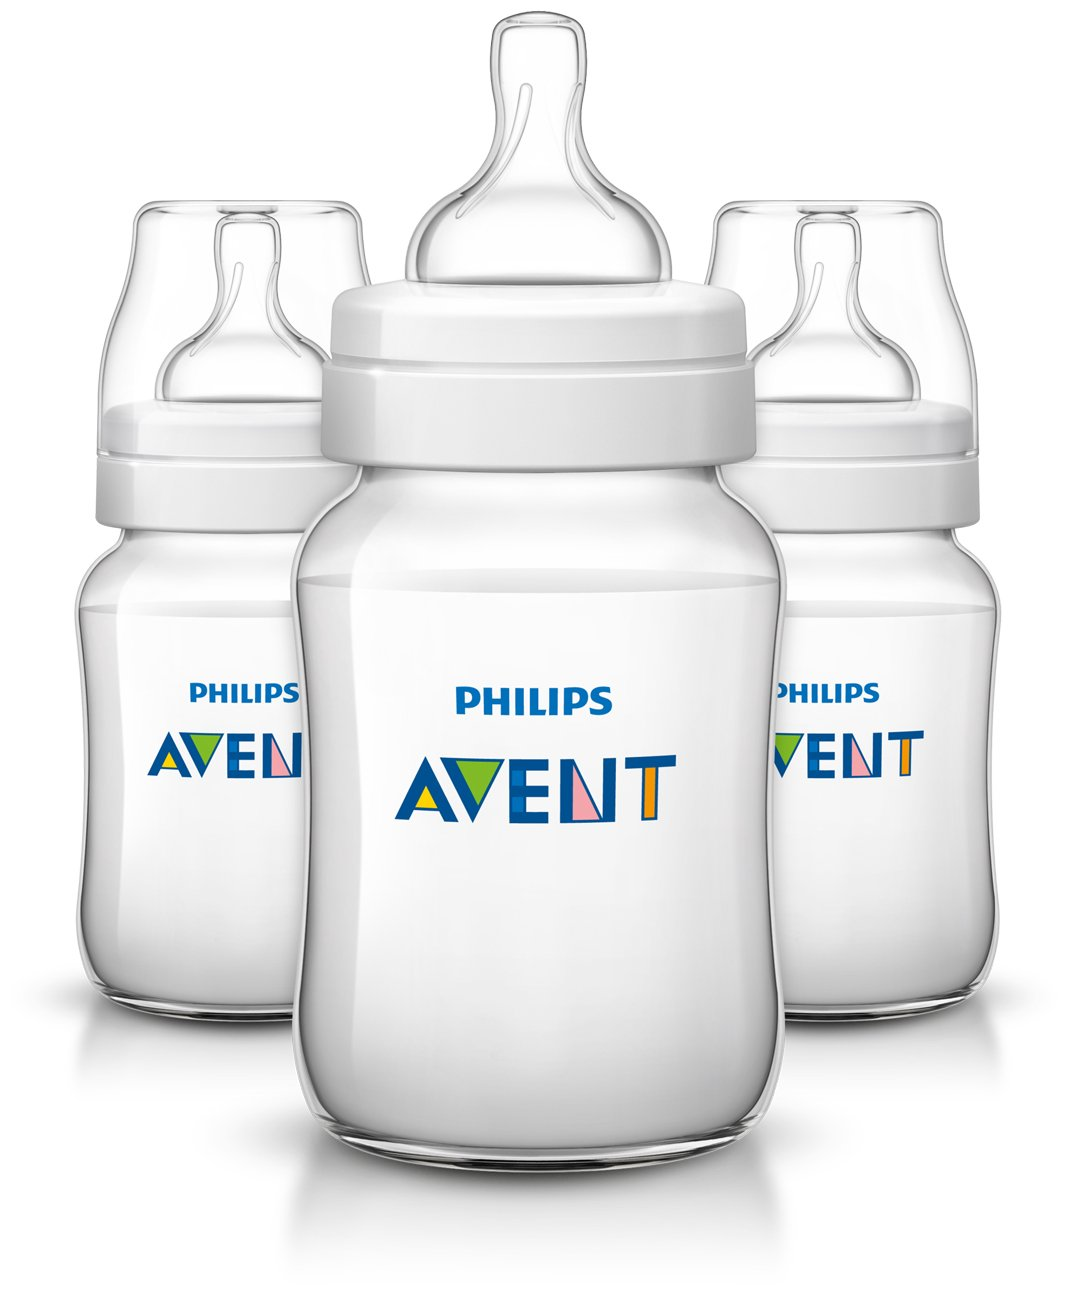 Philips Avent Anti-colic  Baby Bottles Clear, 9 Ounce (3 Count) by Philips AVENT